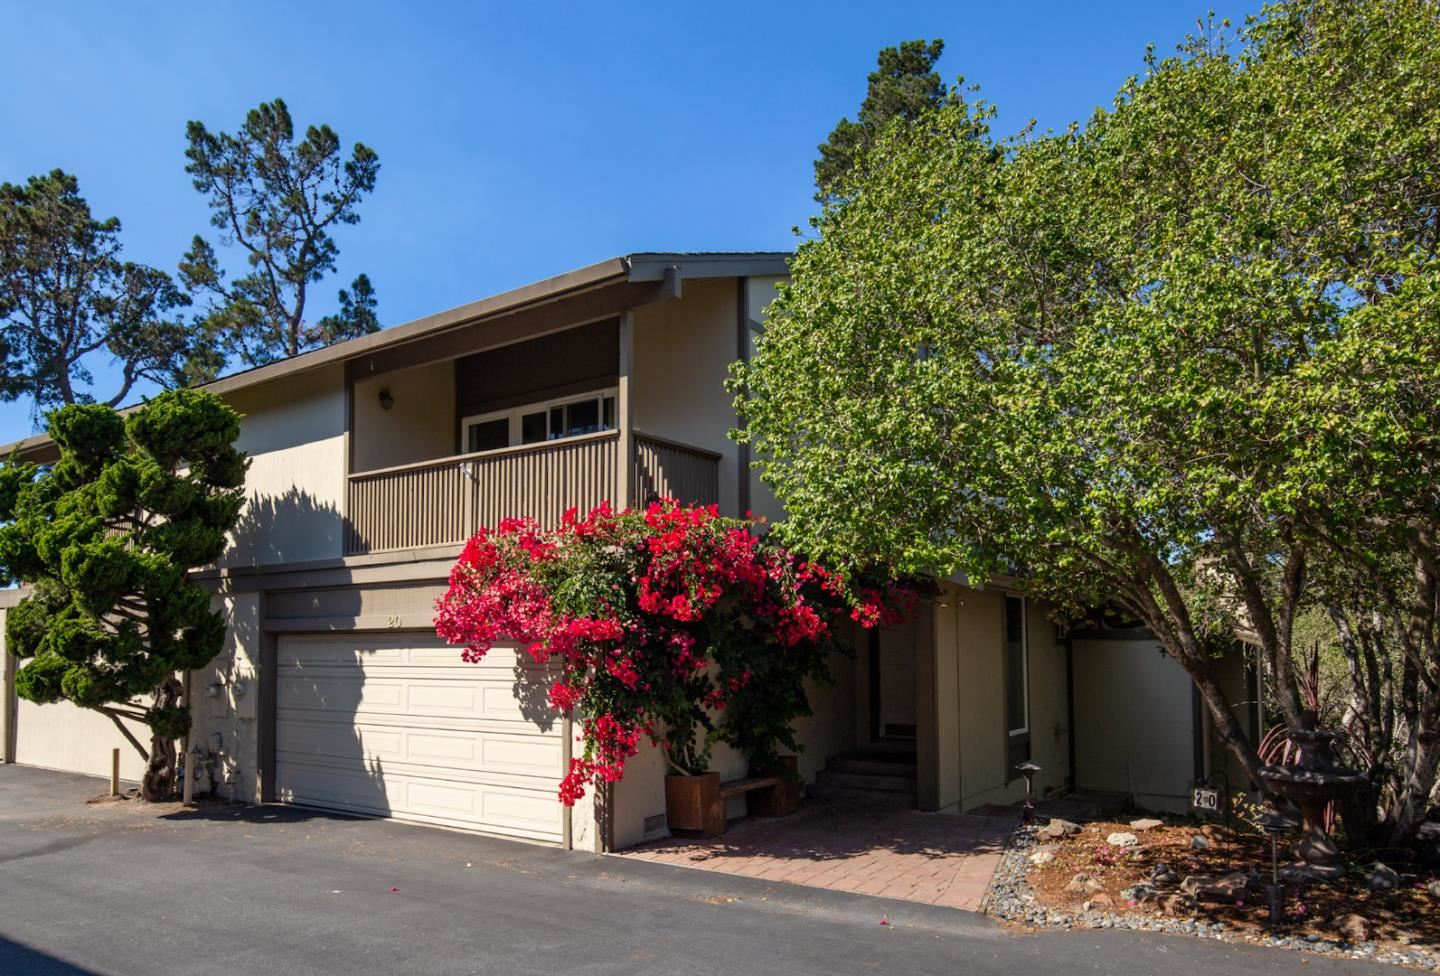 Photo for 1360 Josselyn Canyon Road #20, MONTEREY, CA 93940 (MLS # ML81864296)